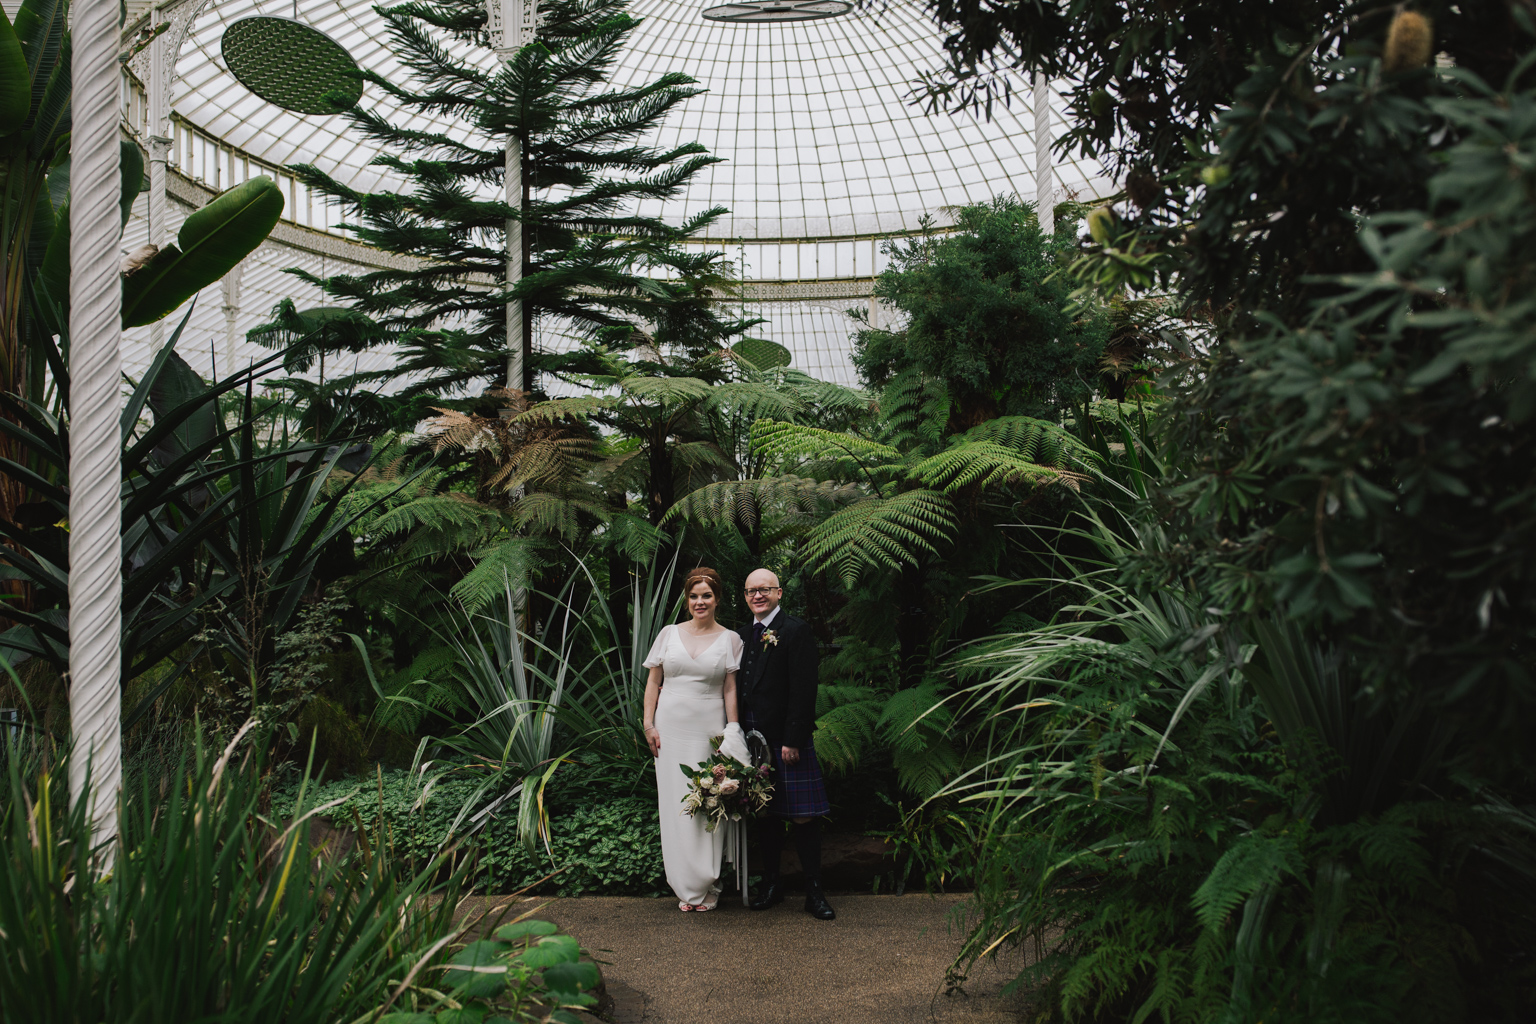 Wedding portraits in the glasshouse at a Glasgow Botanic Gardens Wedding